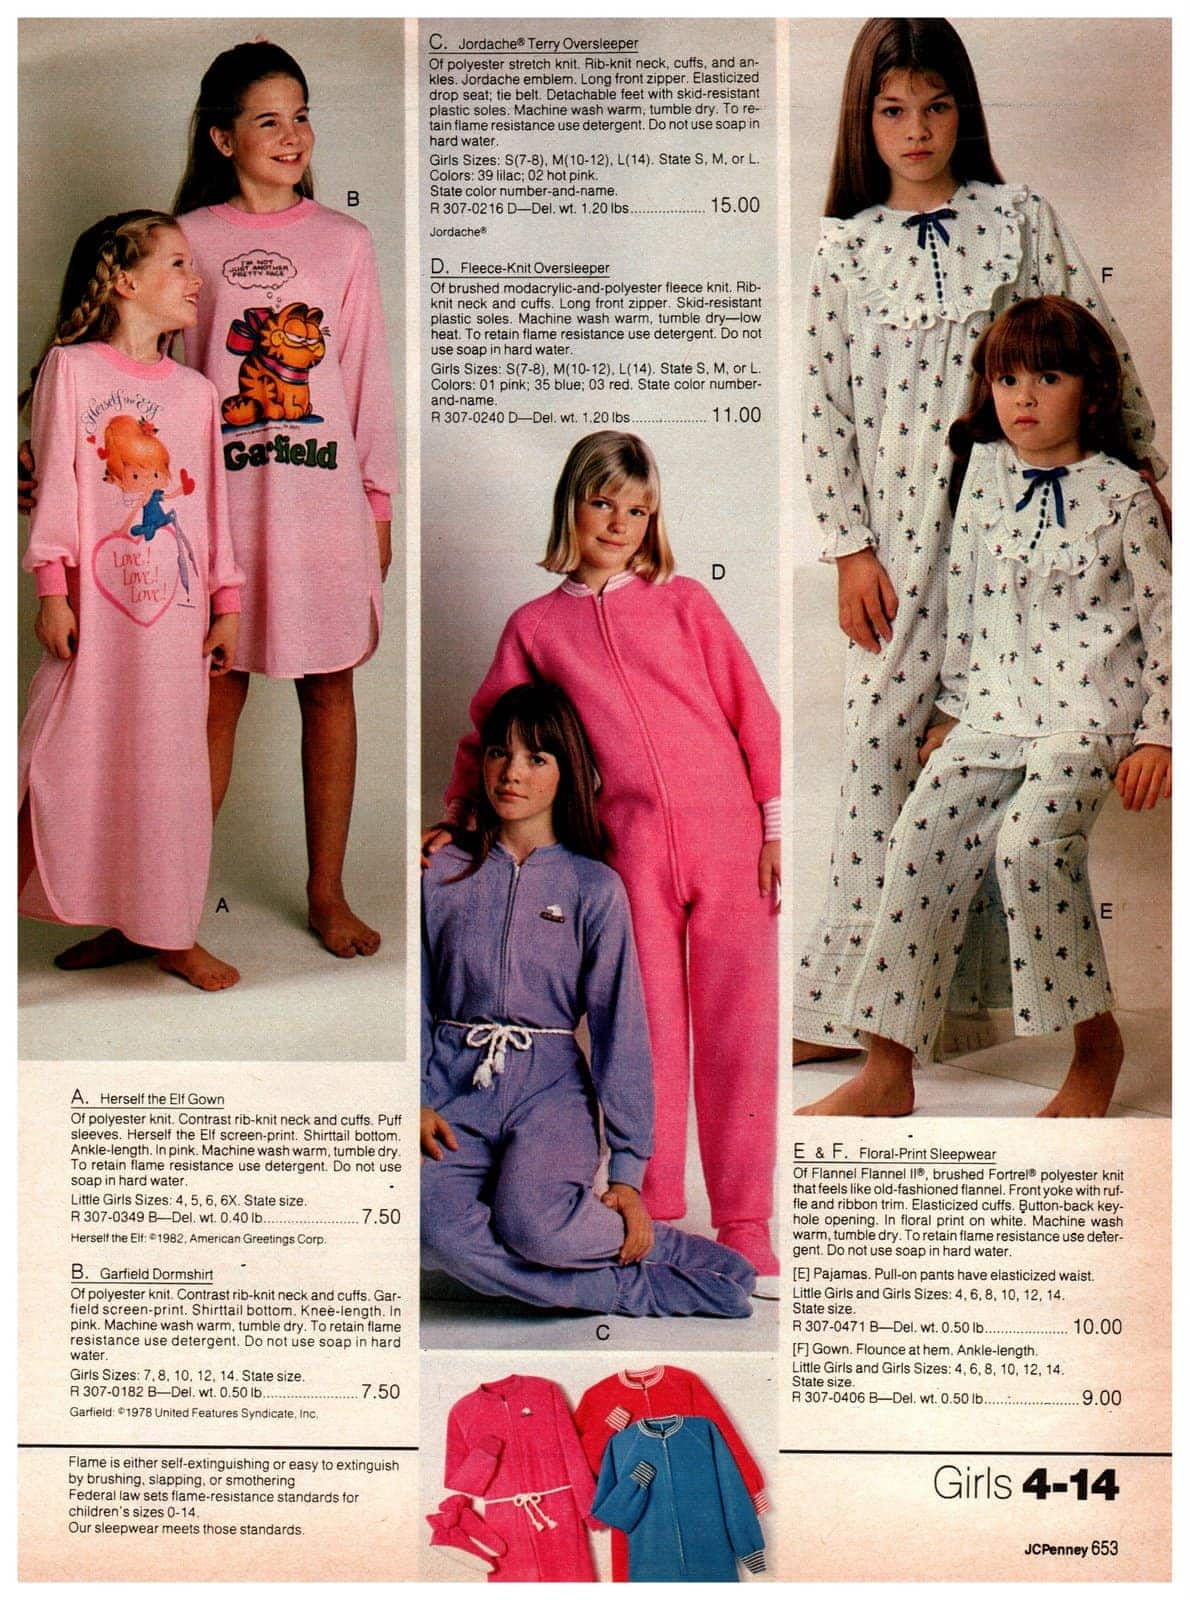 Retro '80s nightgowns and pajamas for girls, including those with Garfield the Cat and Herself the Elf